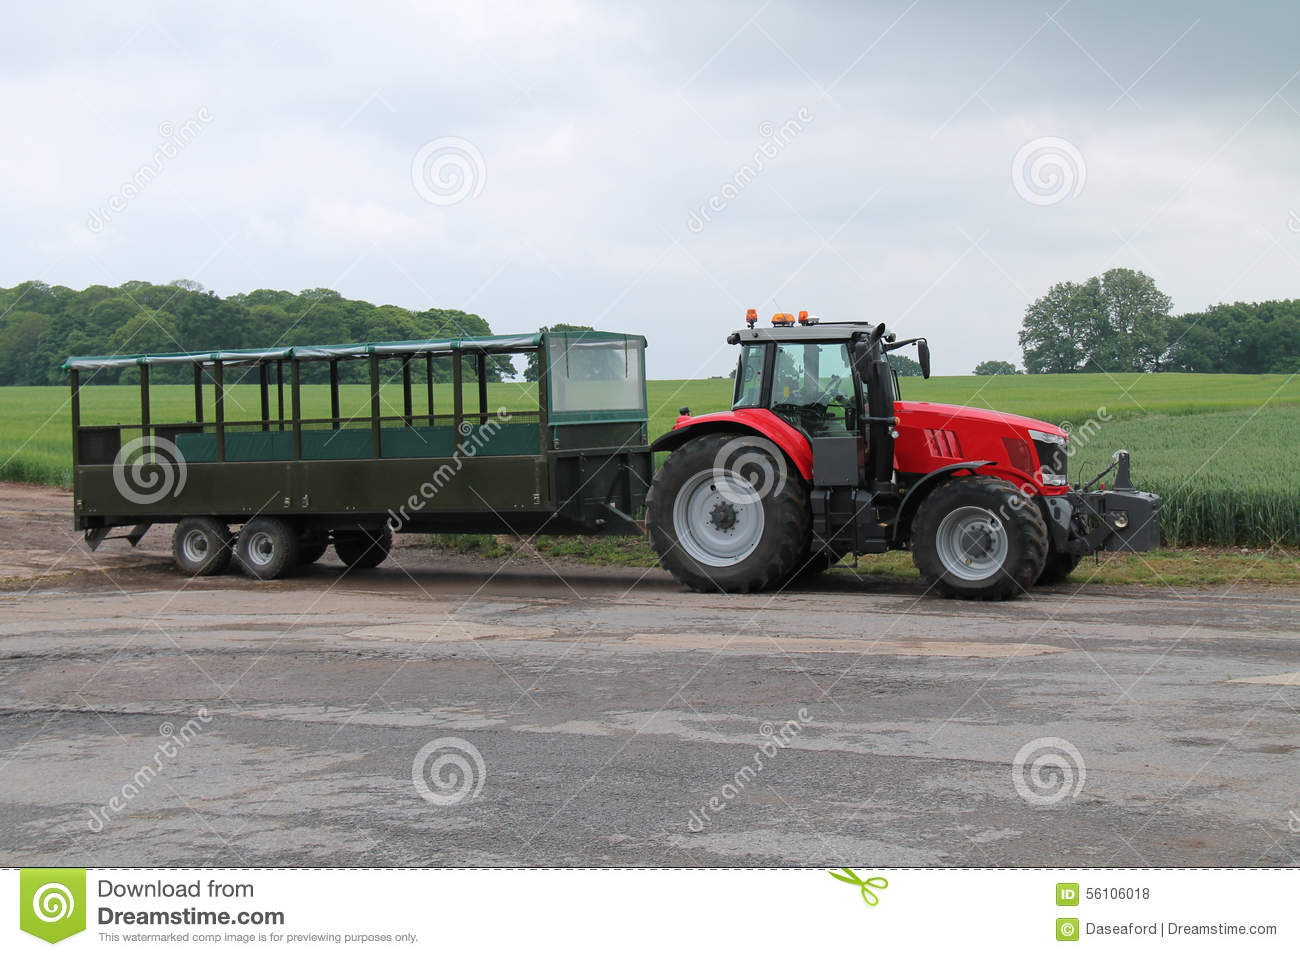 Tractor Trailer Stock : Tractor trailer stock photo image of personnel